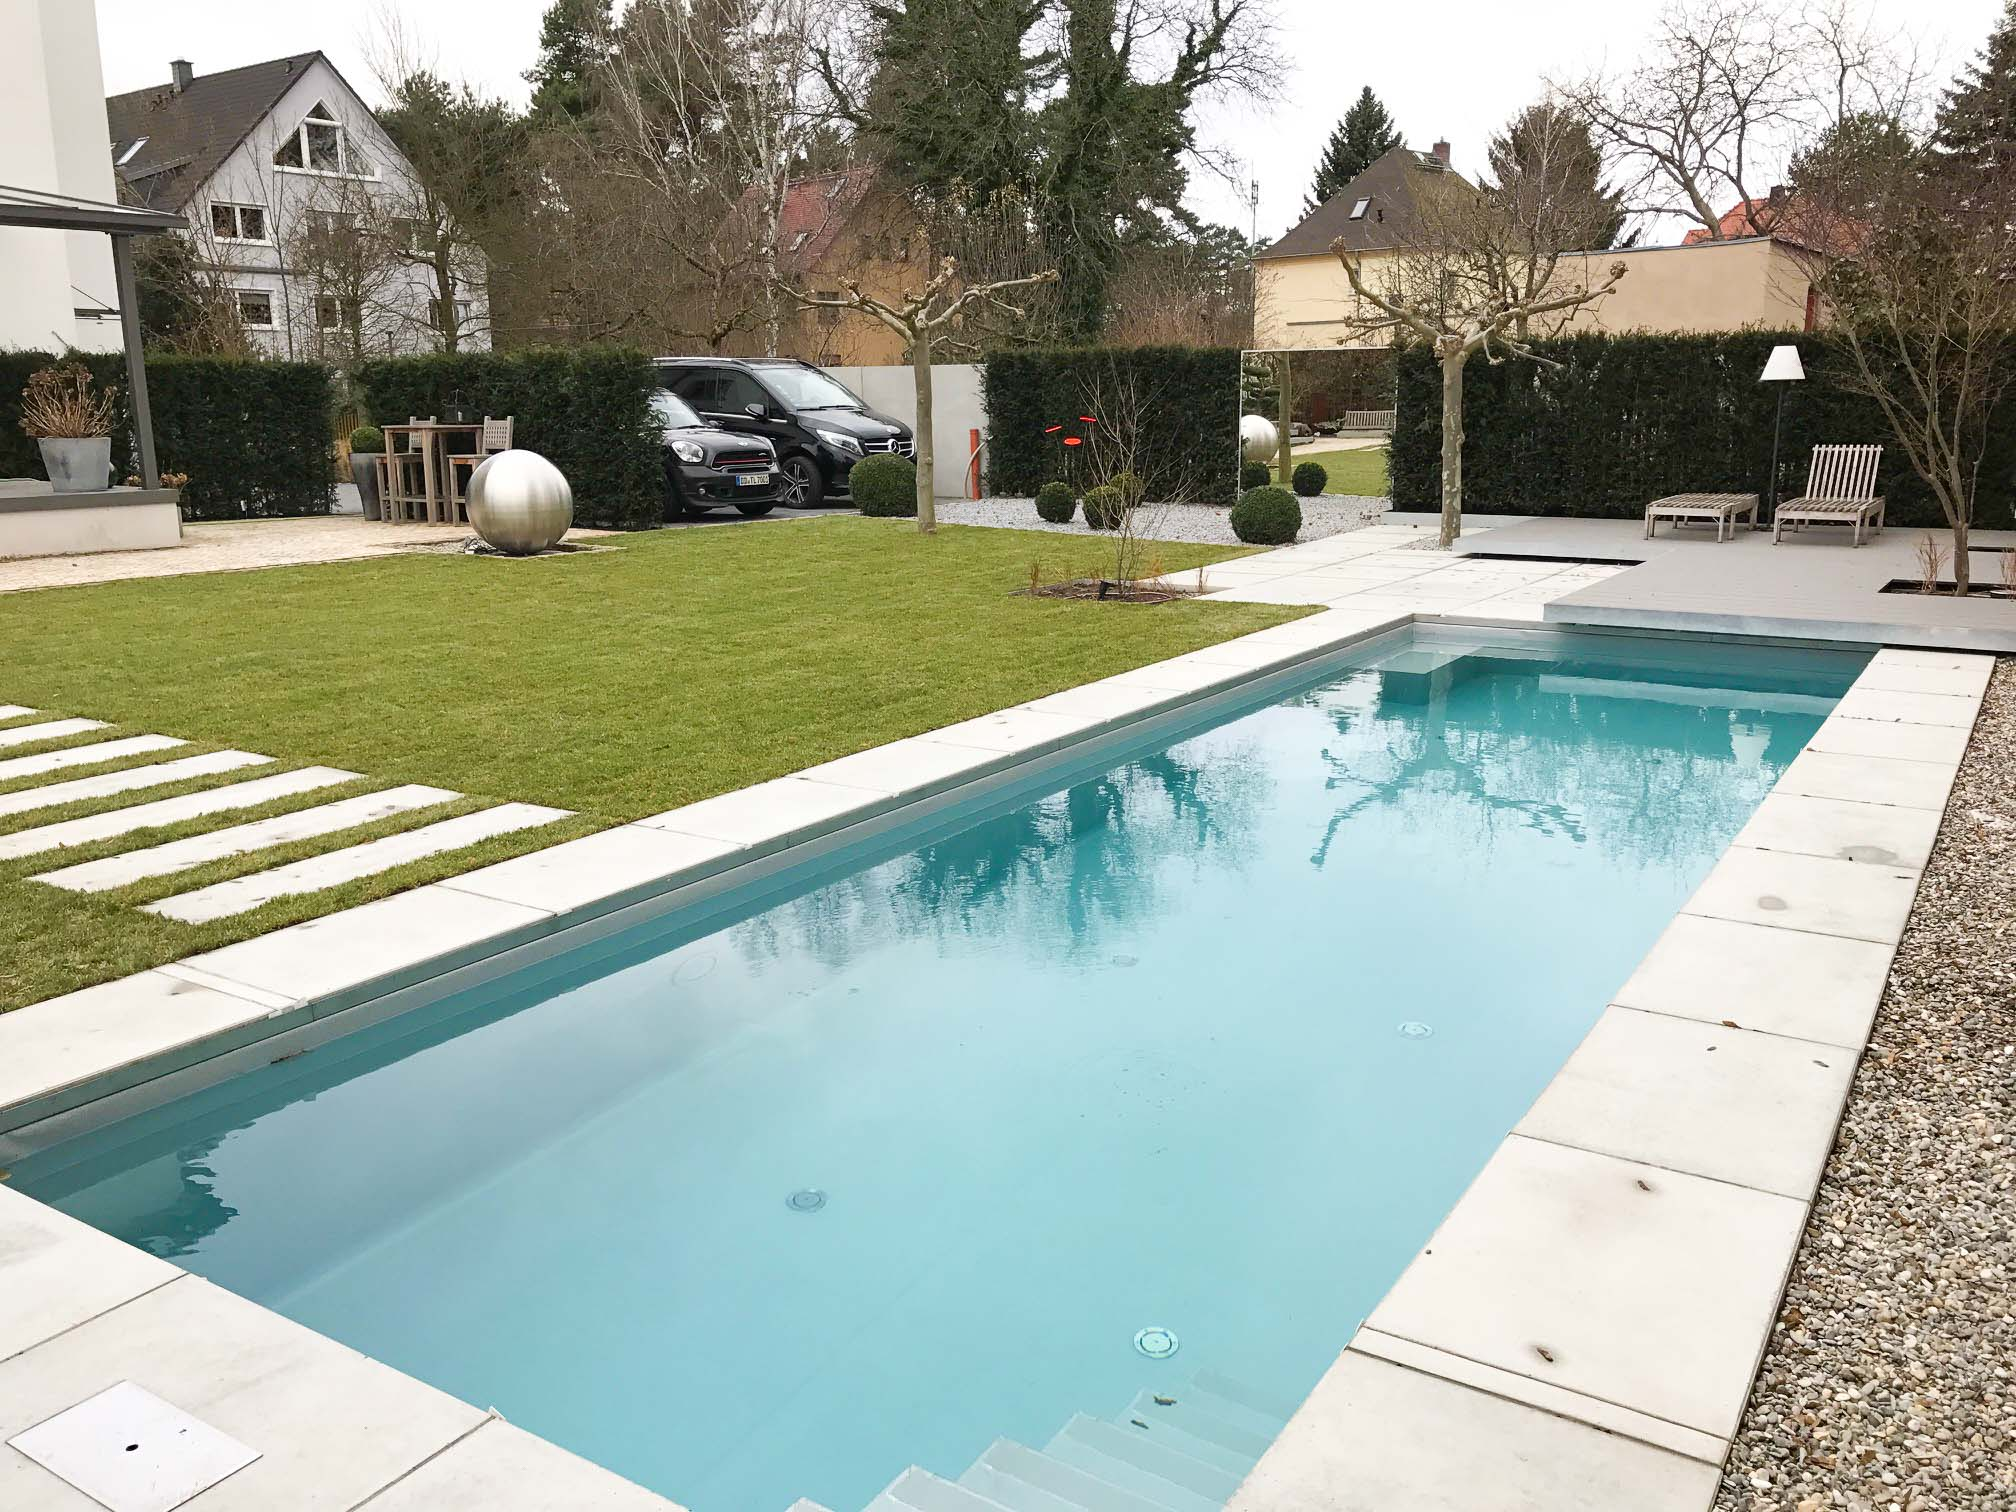 Pool Bauen Hamburg Pool Bau Beautiful With Pool Bau Simple Arbeiten Sie